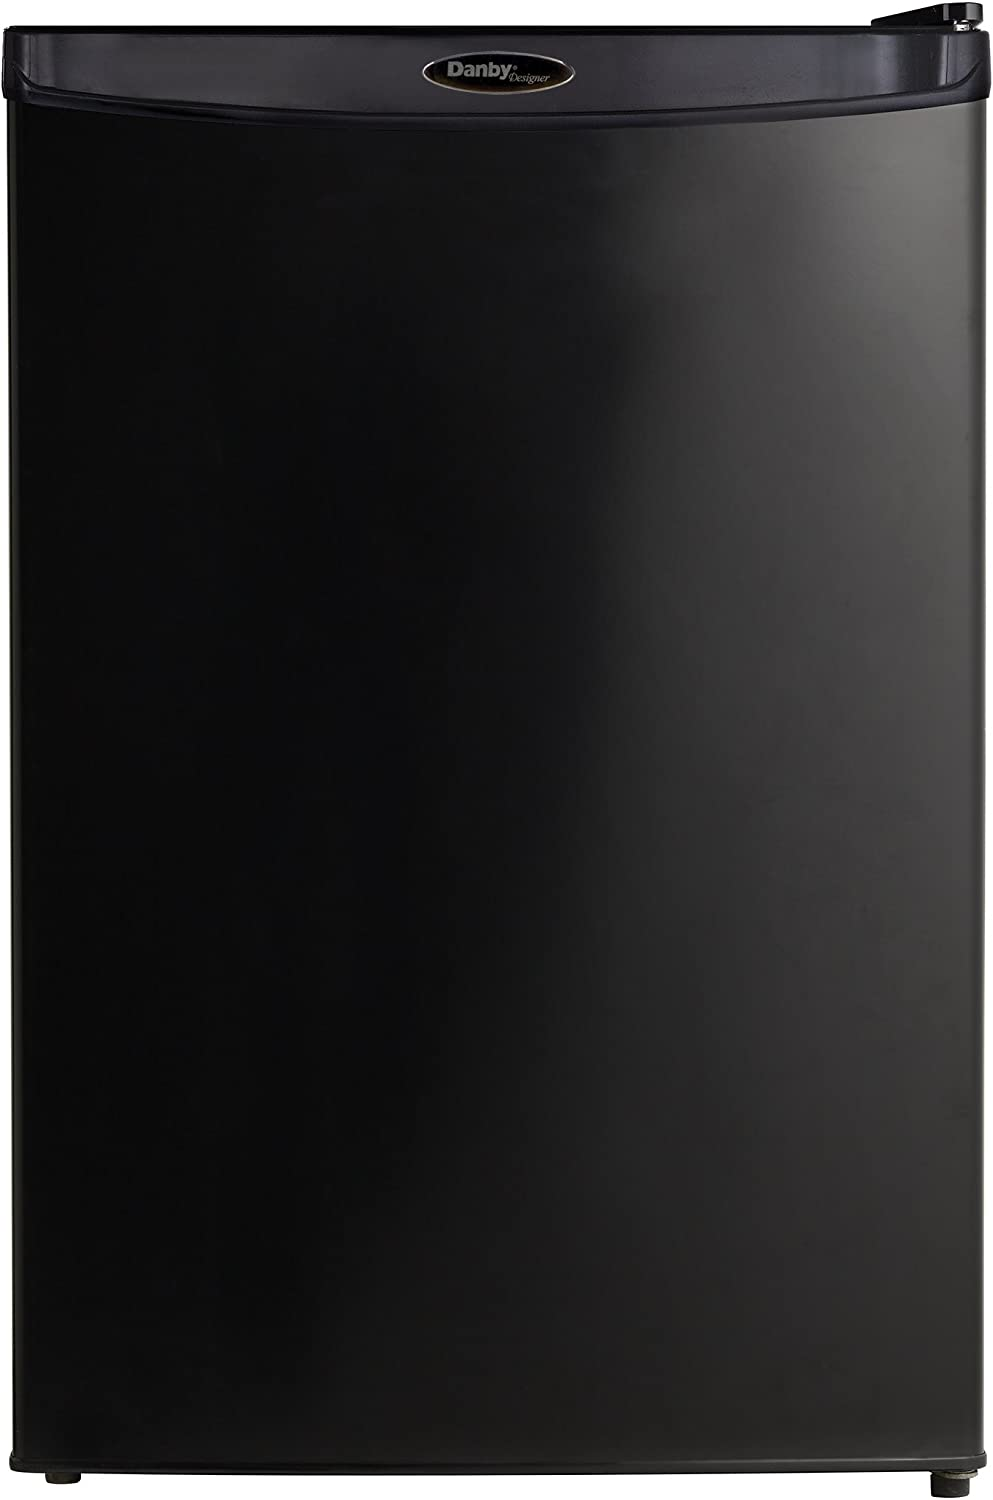 Danby DAR044A4BDD-6 Designer 4.4 Cubic Foot Mini Fridge - Black